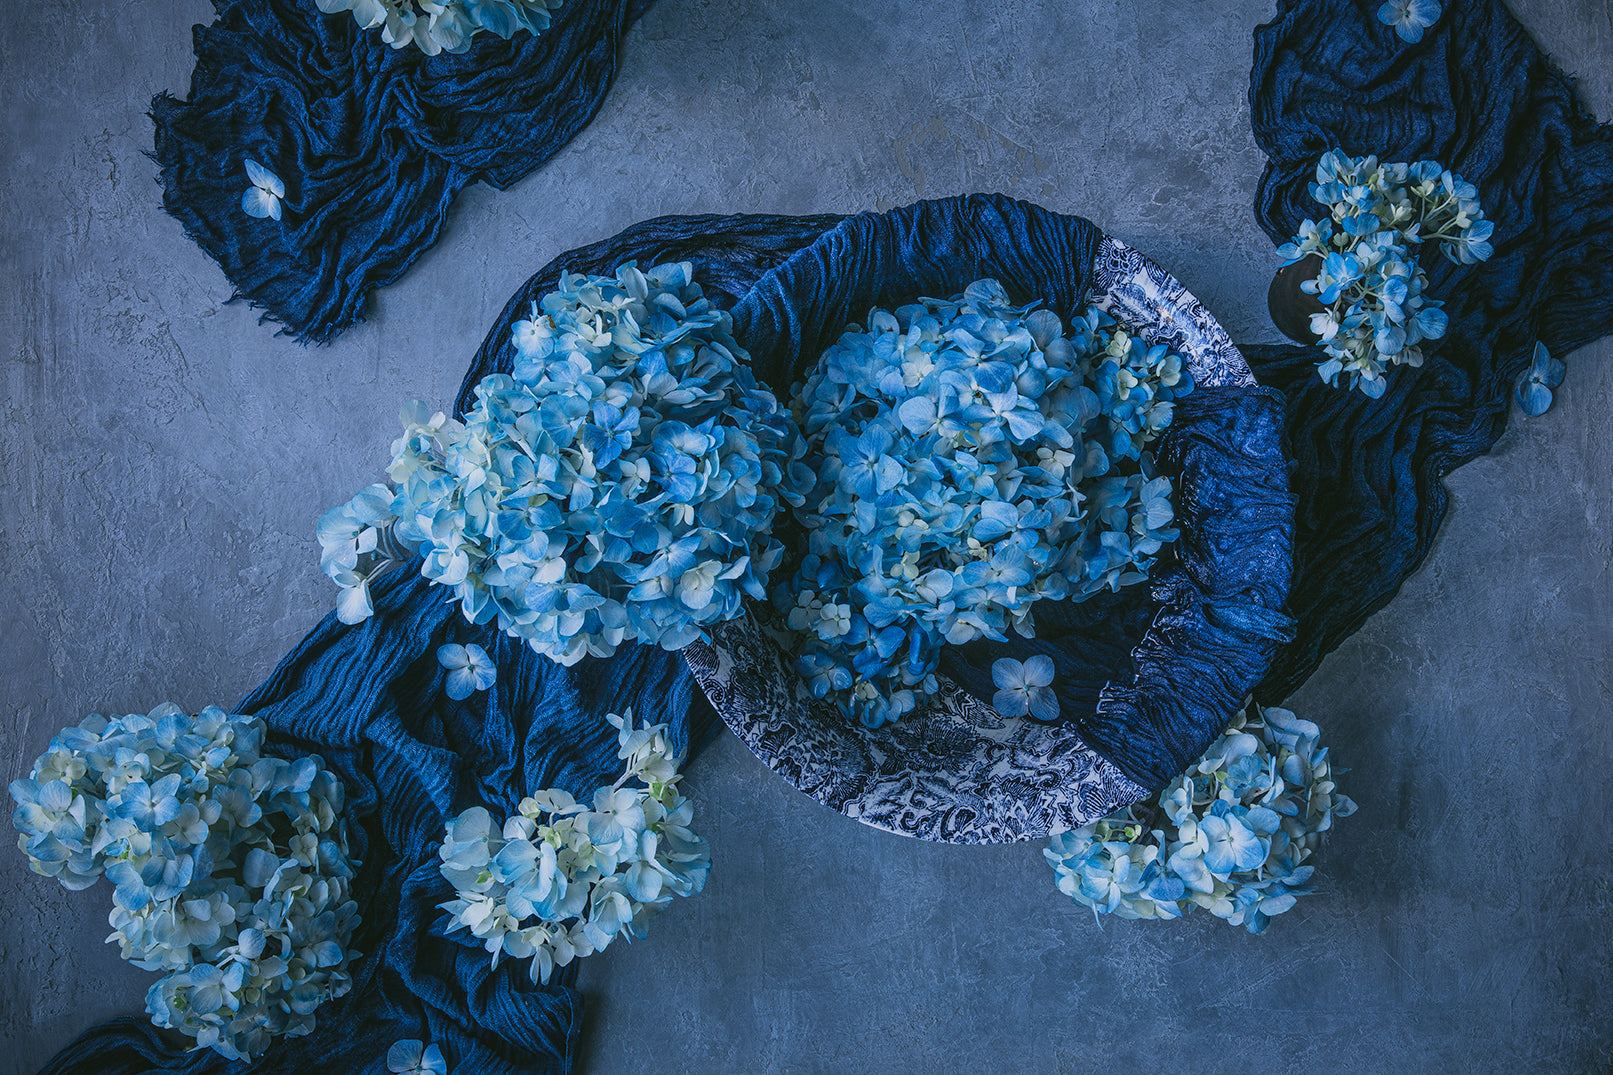 still life photo of blue and white flowers with blue scarf